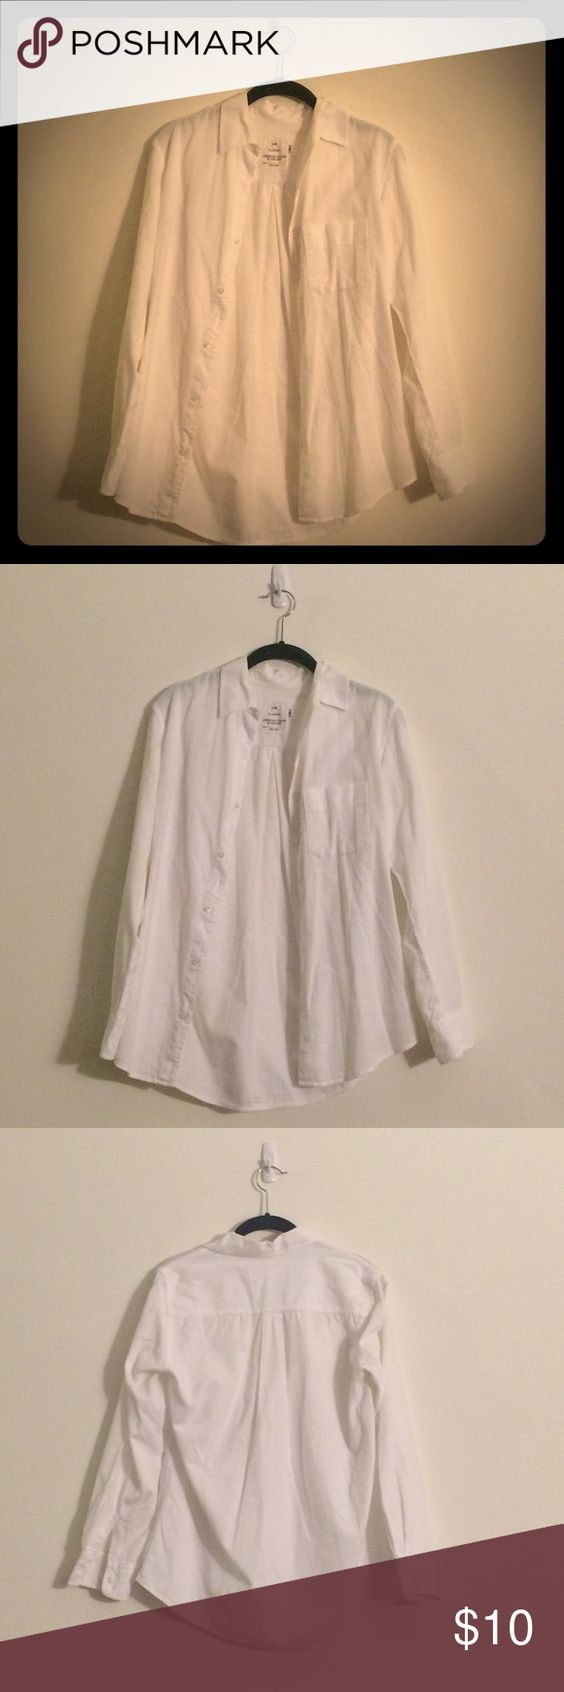 White corduroy-style button down shirt White corduroy style white button down shirt by Alex Lehr for American Colors. Shirt is medium weight with a nice texture and in good used condition. 100% cotton. American Colors Tops Button Down Shirts